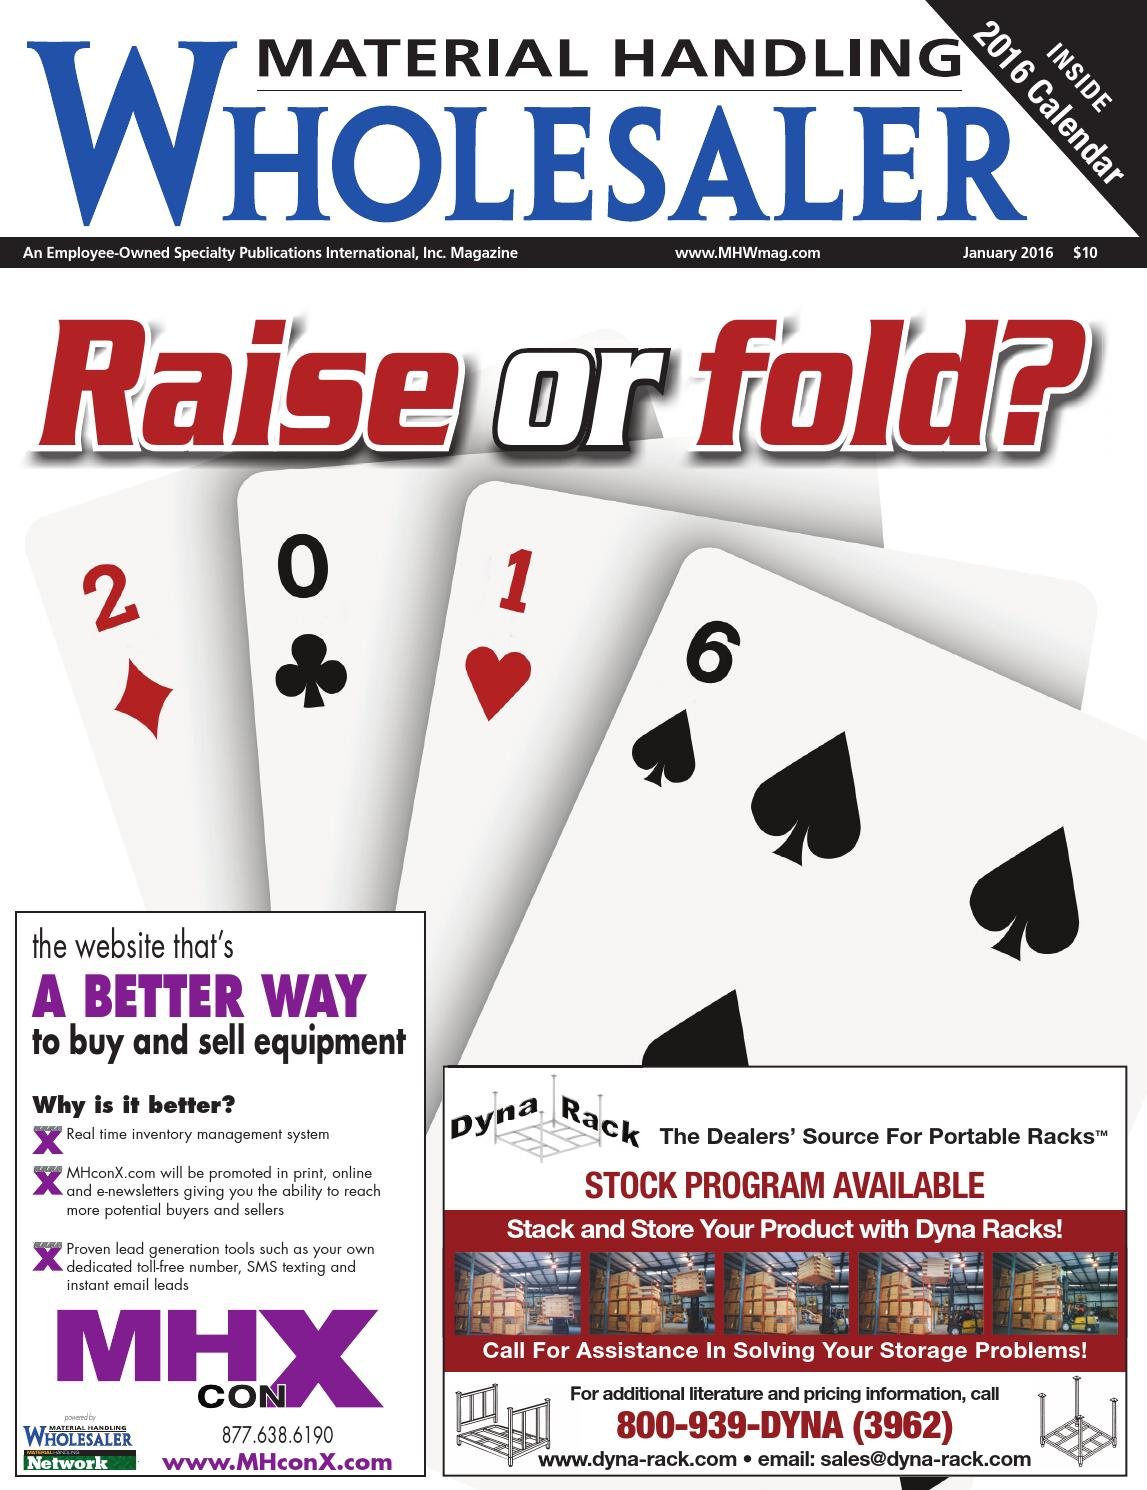 Material handling wholesaler january 2016 by material handling material handling wholesaler january 2016 by material handling wholesaler issuu fandeluxe Choice Image